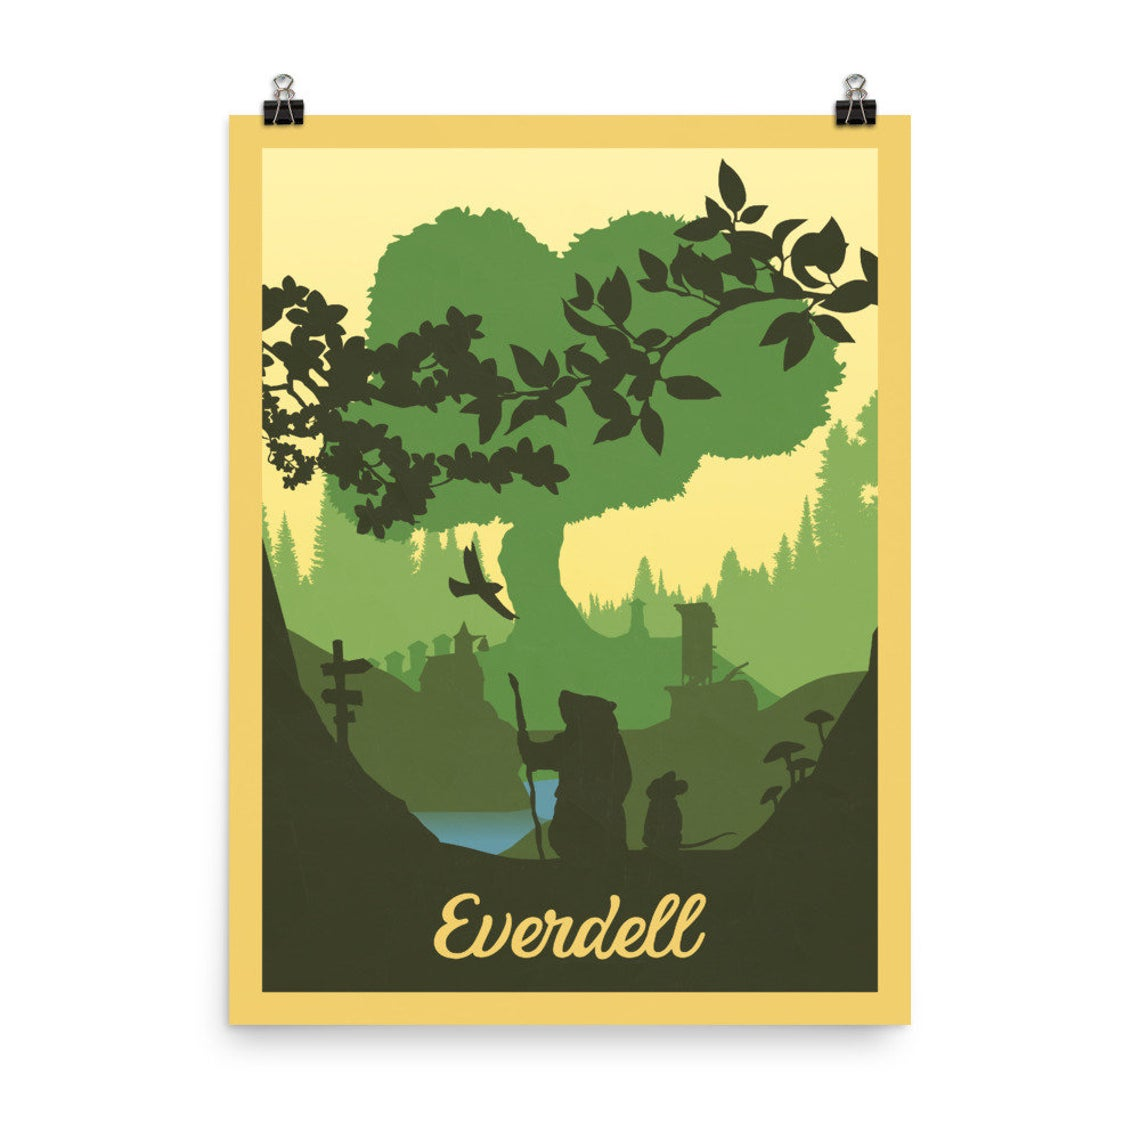 A minimalist art style poster of the board game Everdell